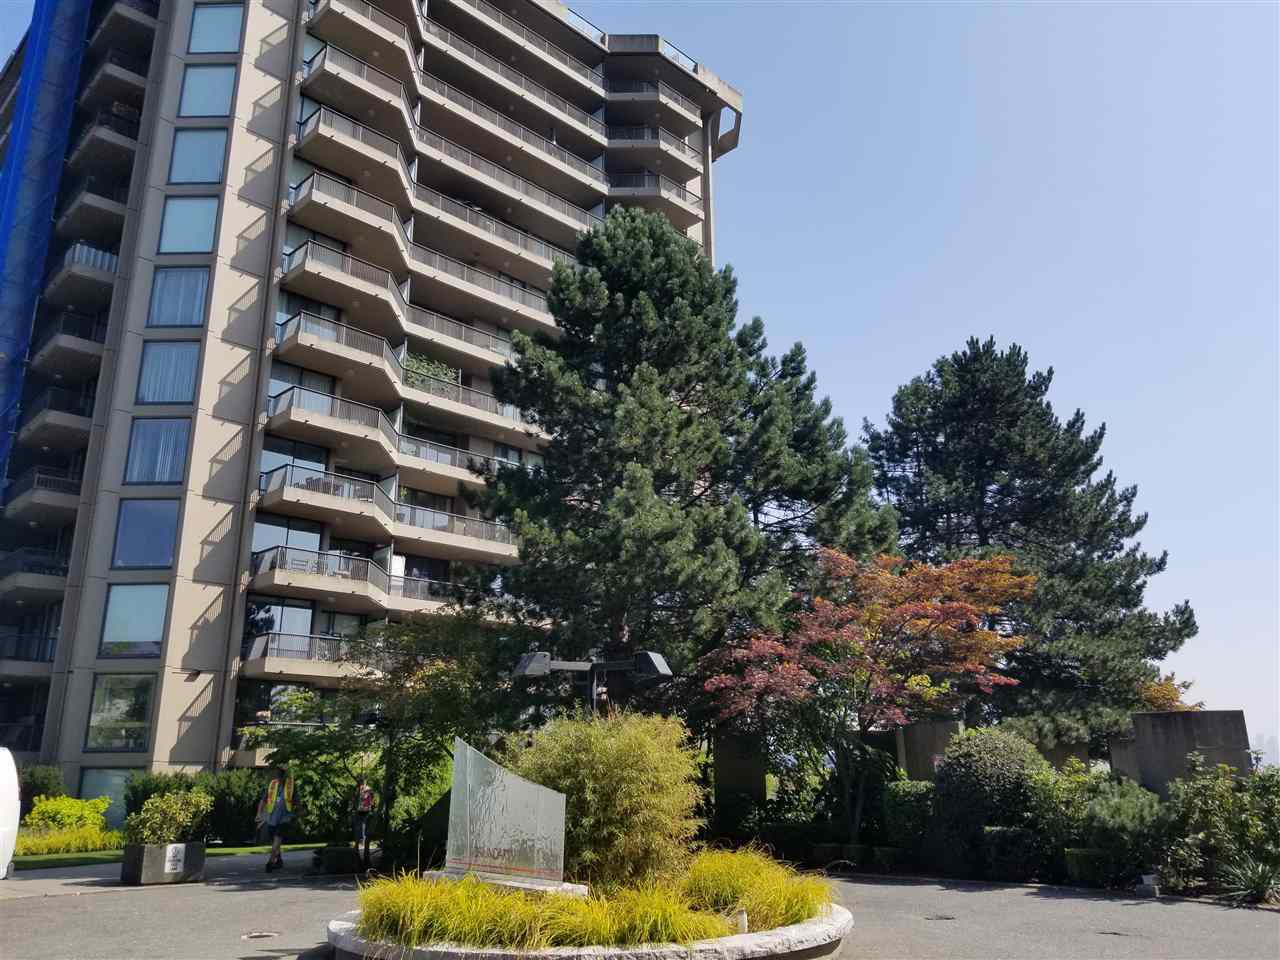 """Main Photo: 403 3760 ALBERT Street in Burnaby: Vancouver Heights Condo for sale in """"Boundary View"""" (Burnaby North)  : MLS®# R2384994"""